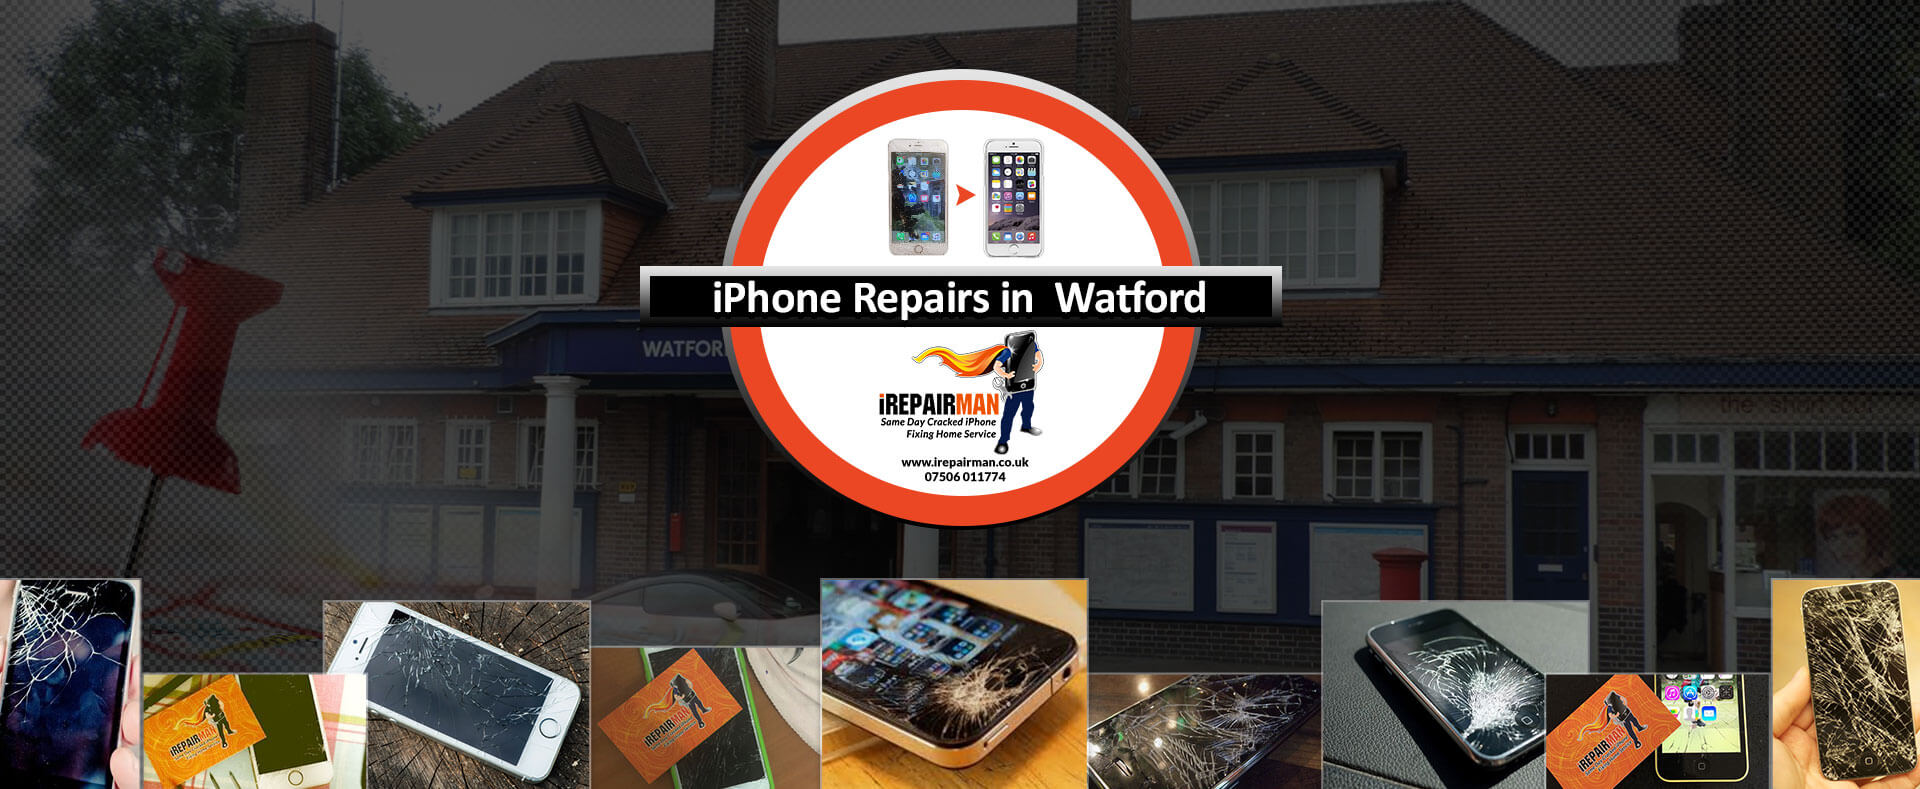 iPhone Repairs in Watford